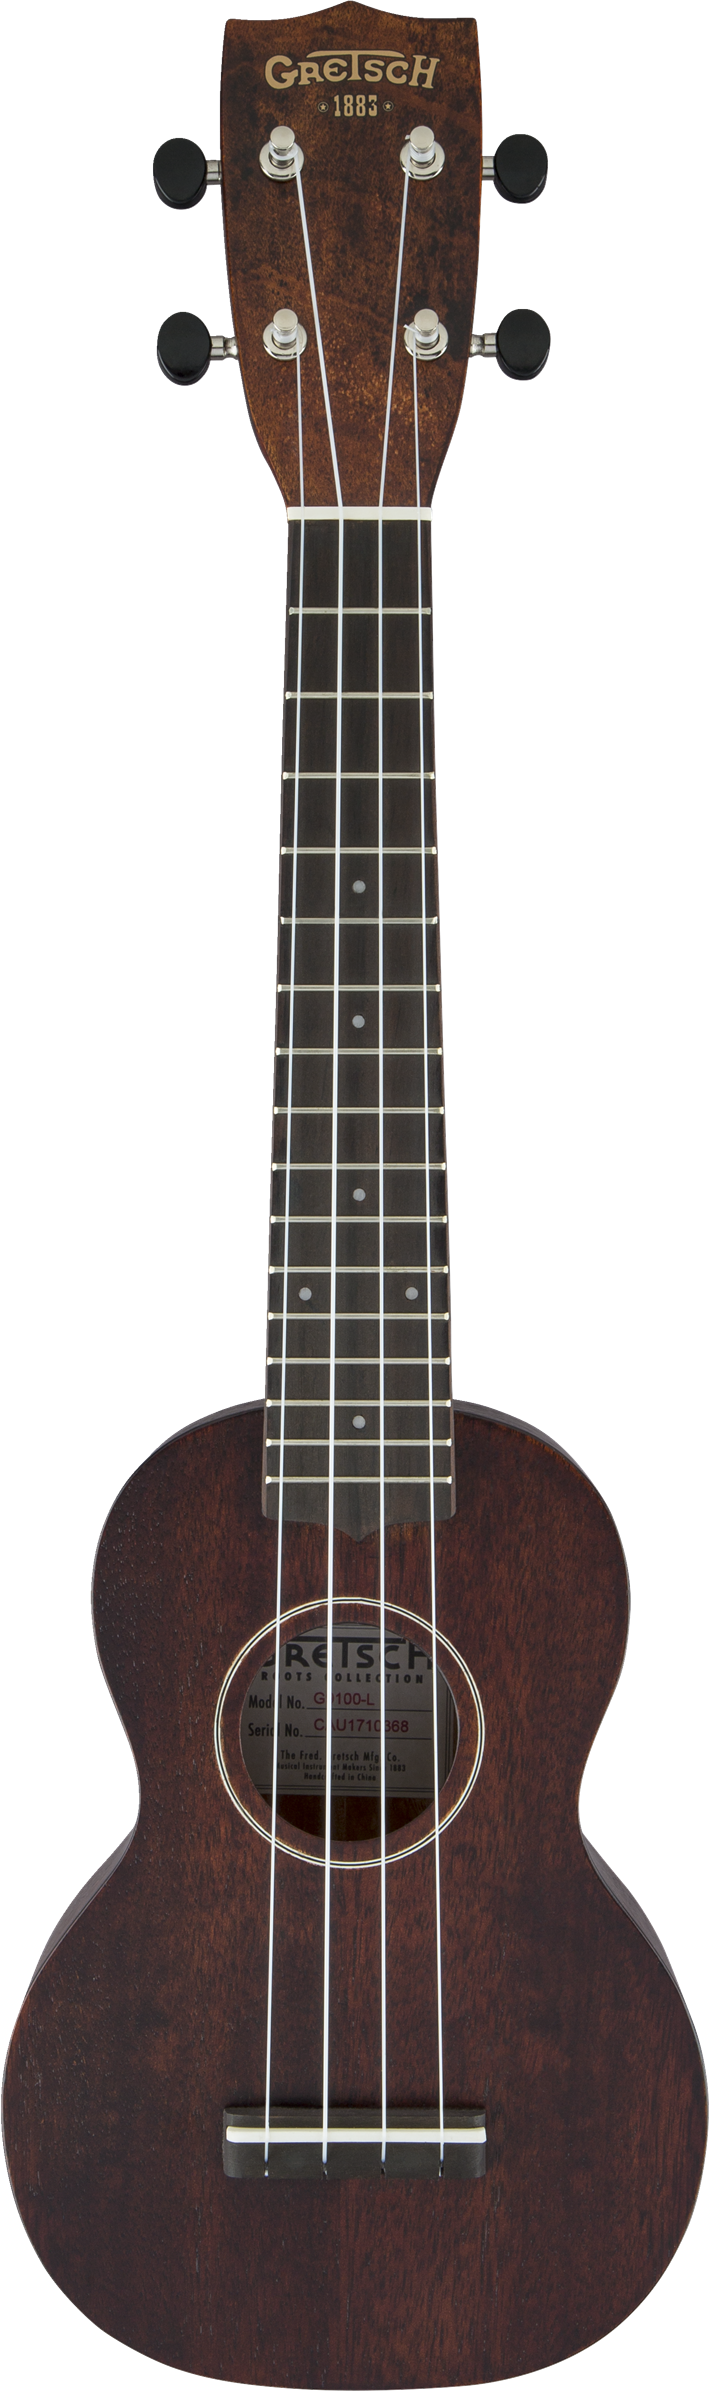 Gretsch G9100-L Soprano Long-Neck Ukulele with Gig Bag, Ovangkol Fingerboard - Vintage ...